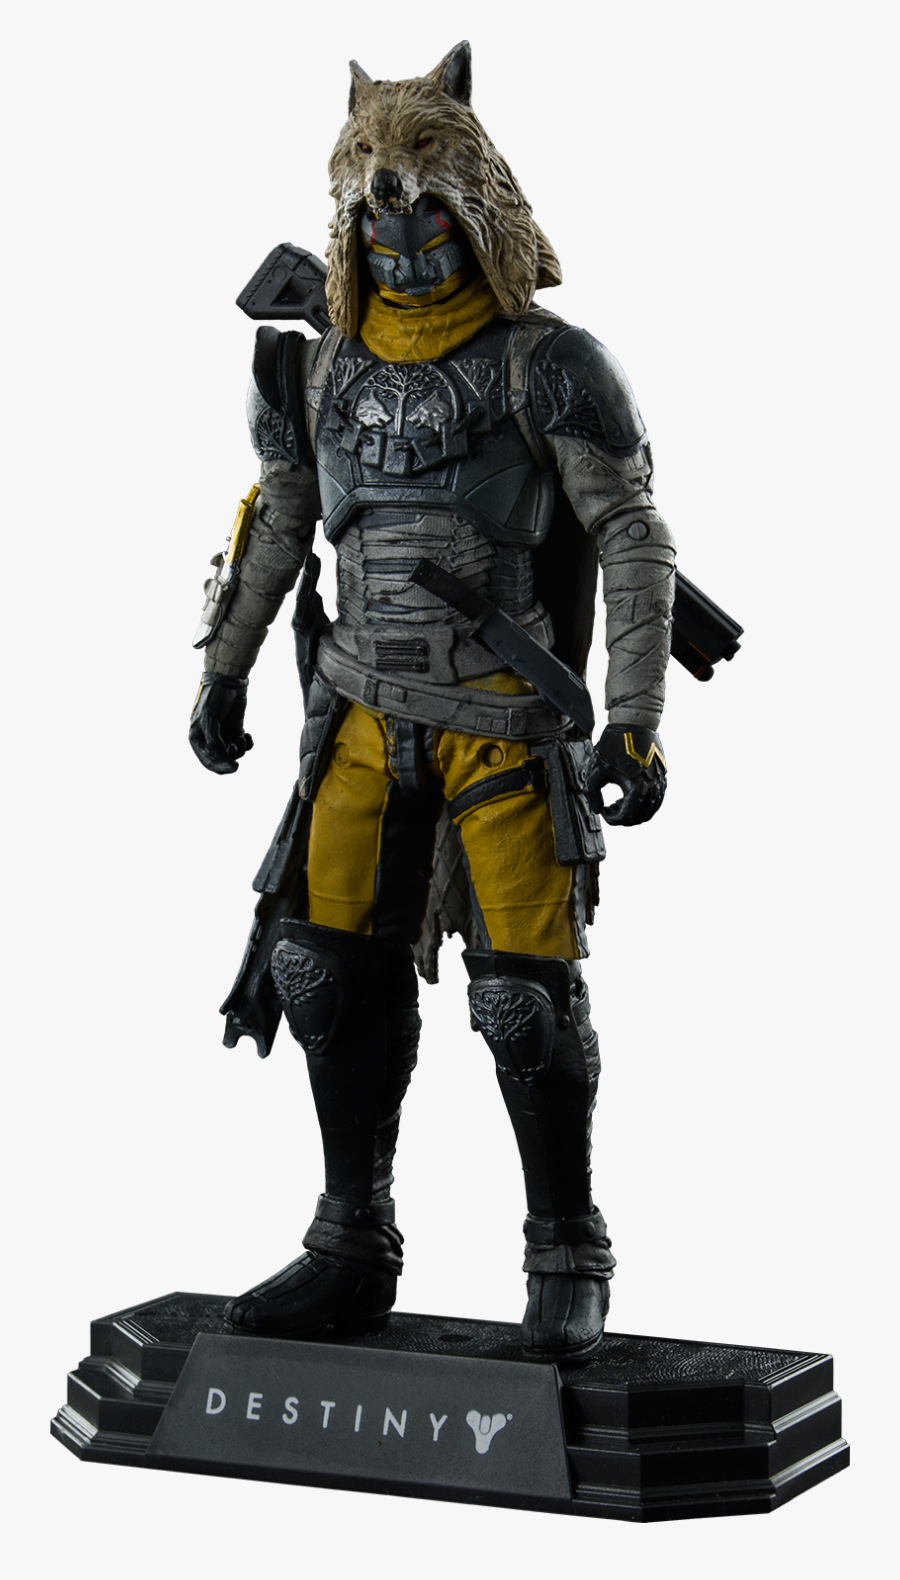 Blacksmith Shader Exclusive Action - Destiny Blacksmith Hunter Action Figure, Transparent Clipart